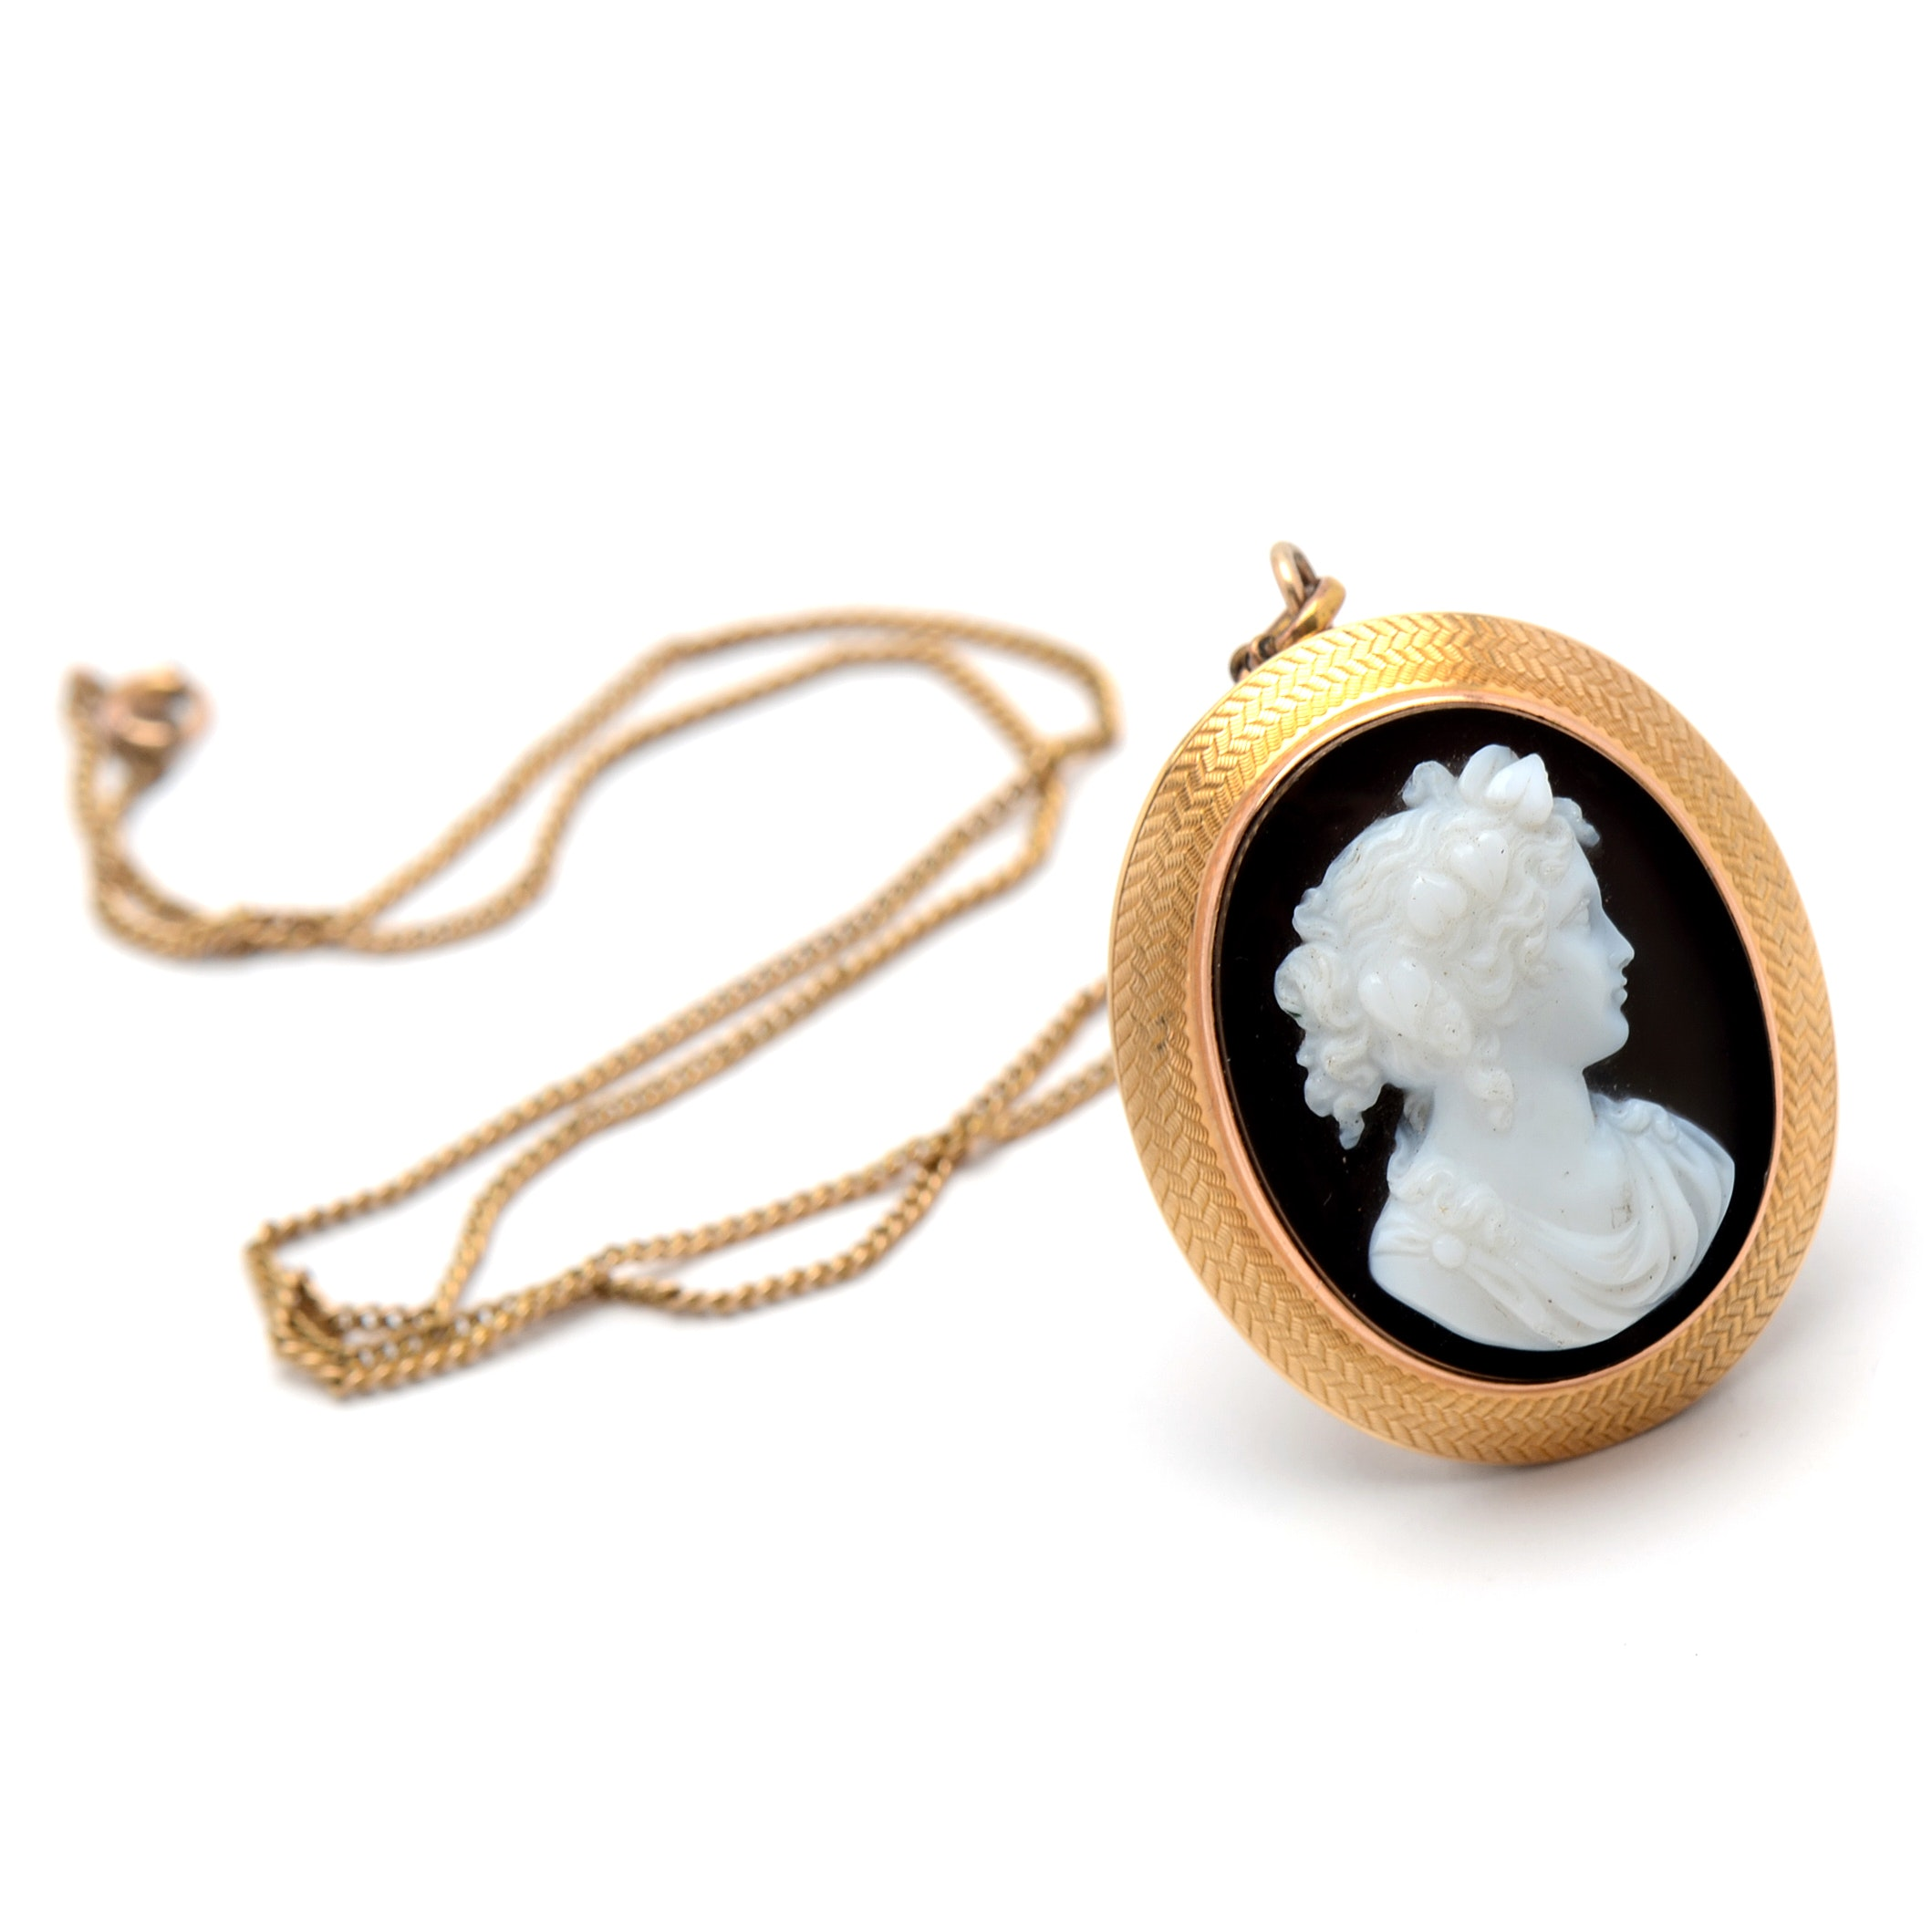 14K Yellow Gold Black Onyx Carved Cameo Pendant